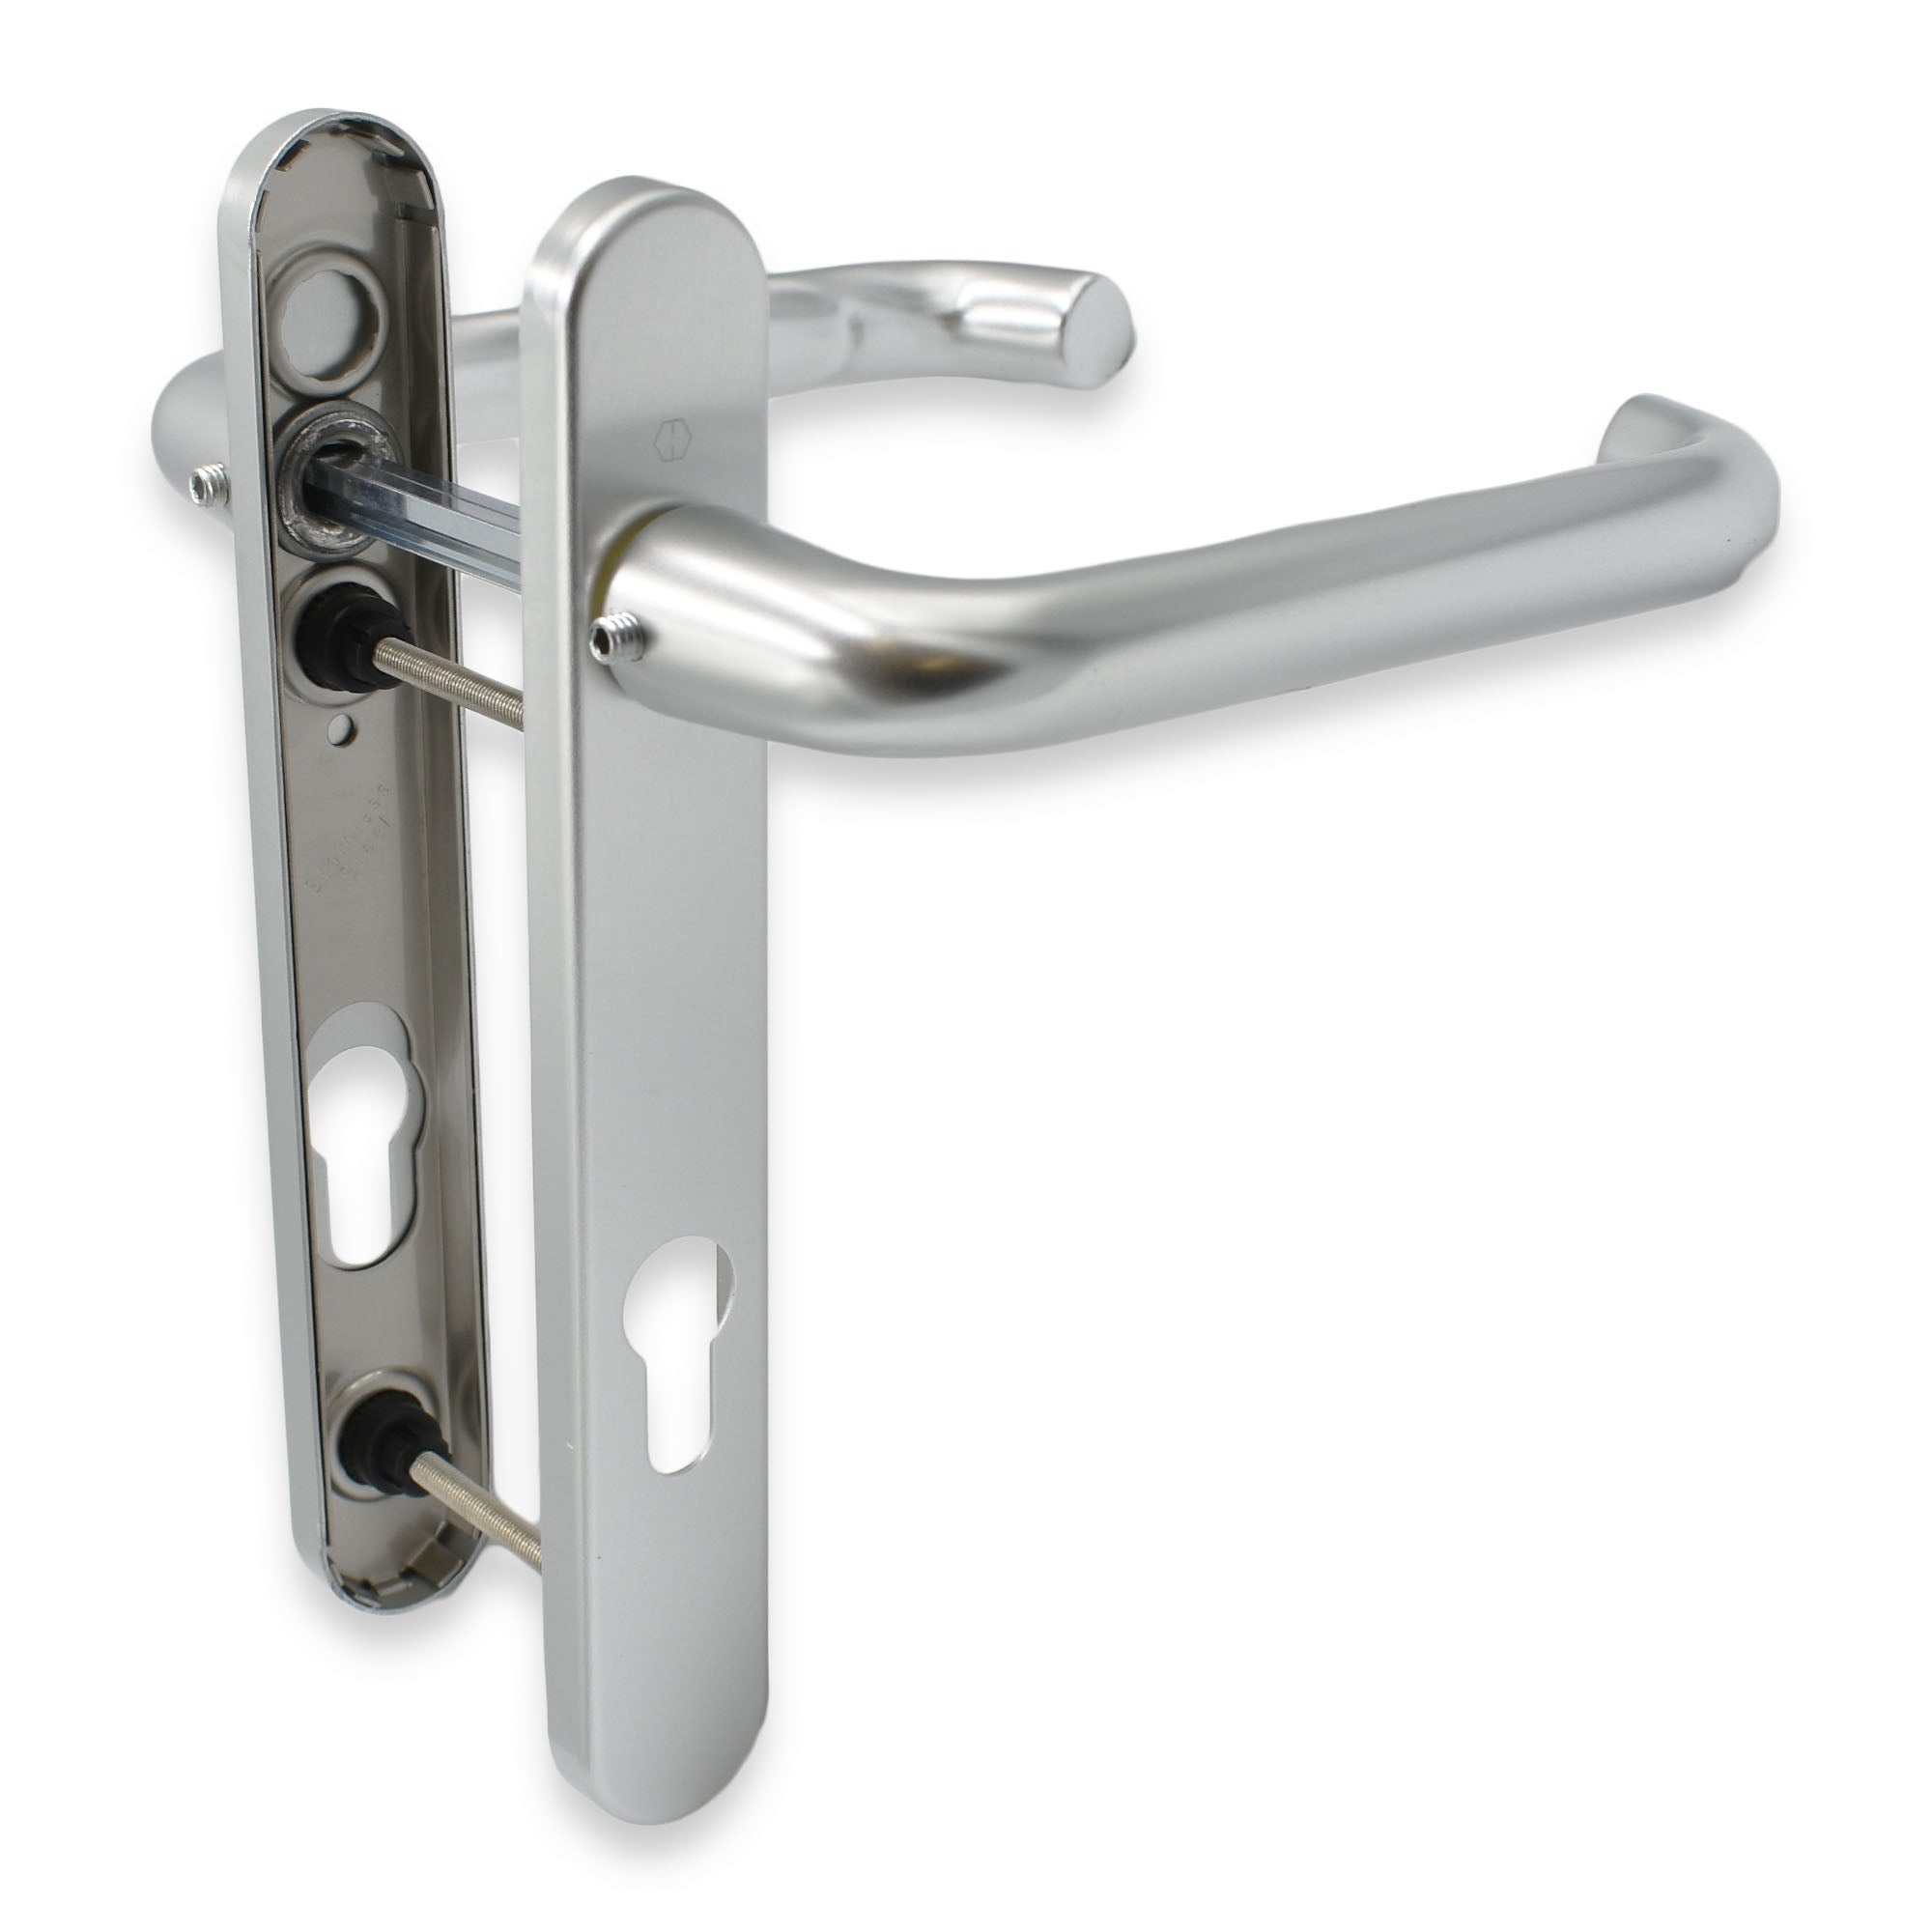 Hoppe Paris Long Lever 92pz 215mm Backplate 122mm Screws Upvc Door Handles -  - Hoppe - UPVCSTORE